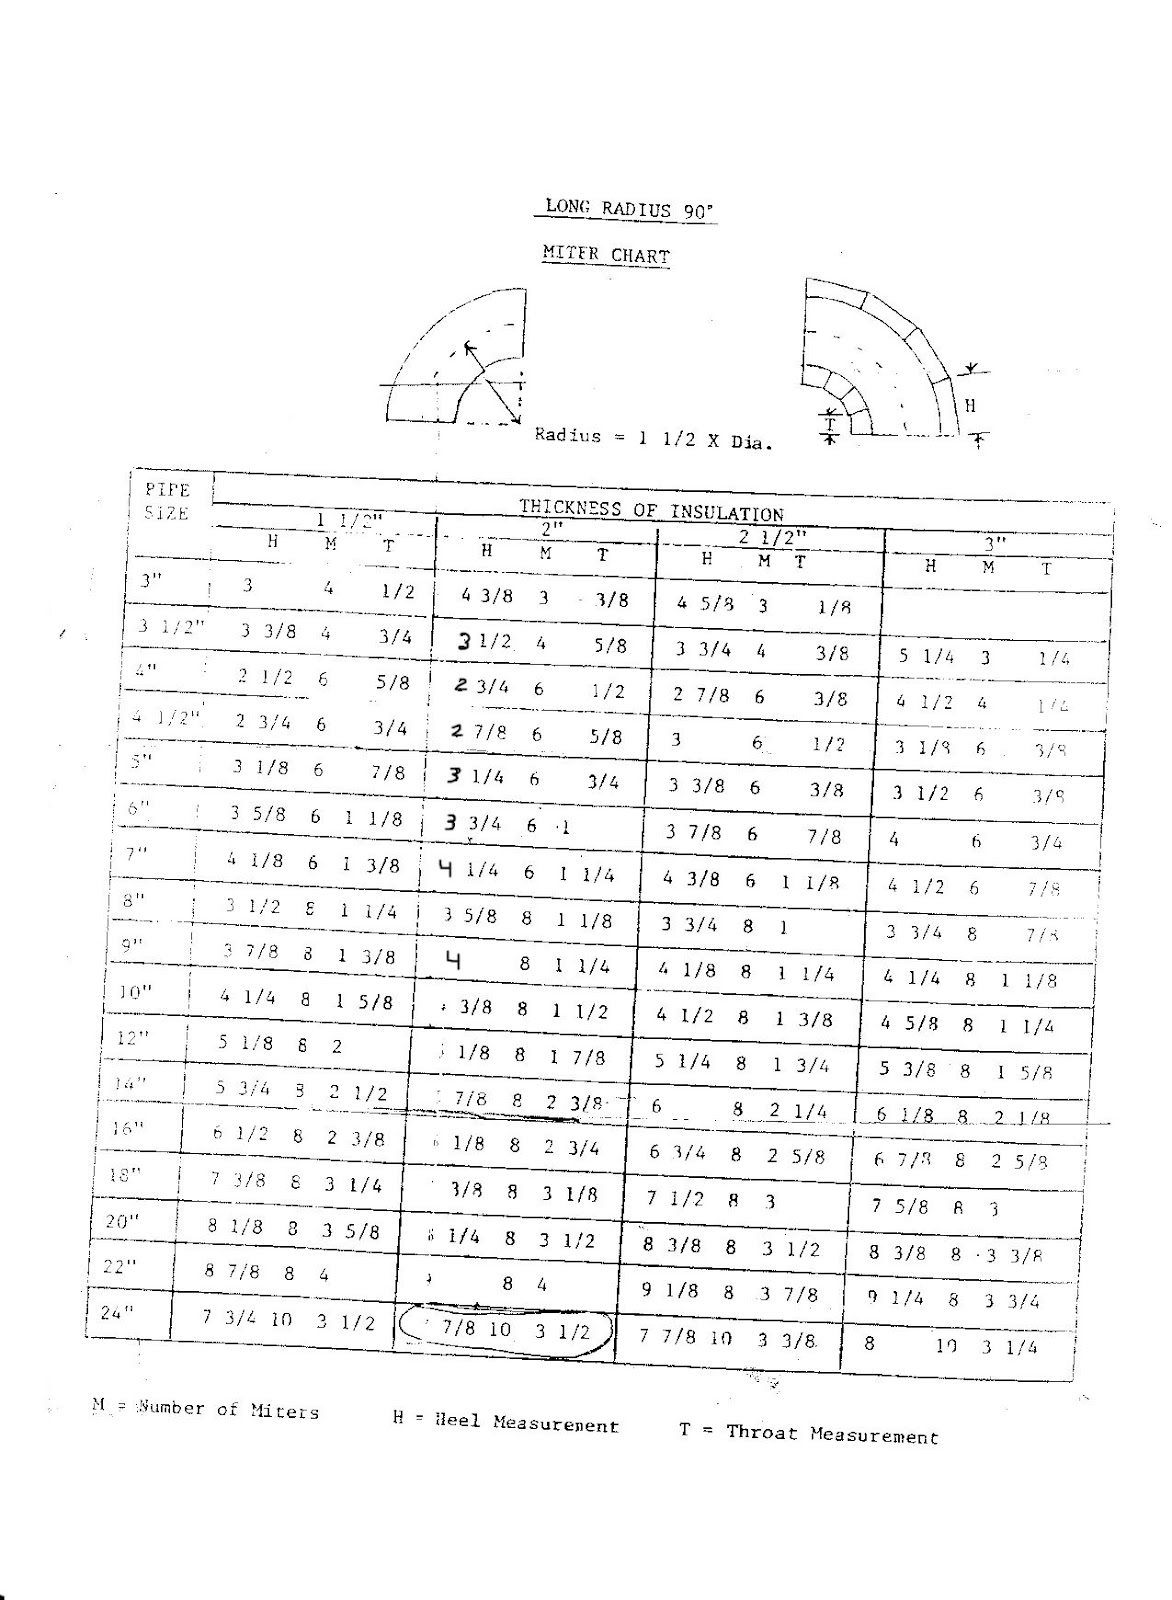 Pattern Layouts For Insulation Workers Long Radious 90 Miter Chart